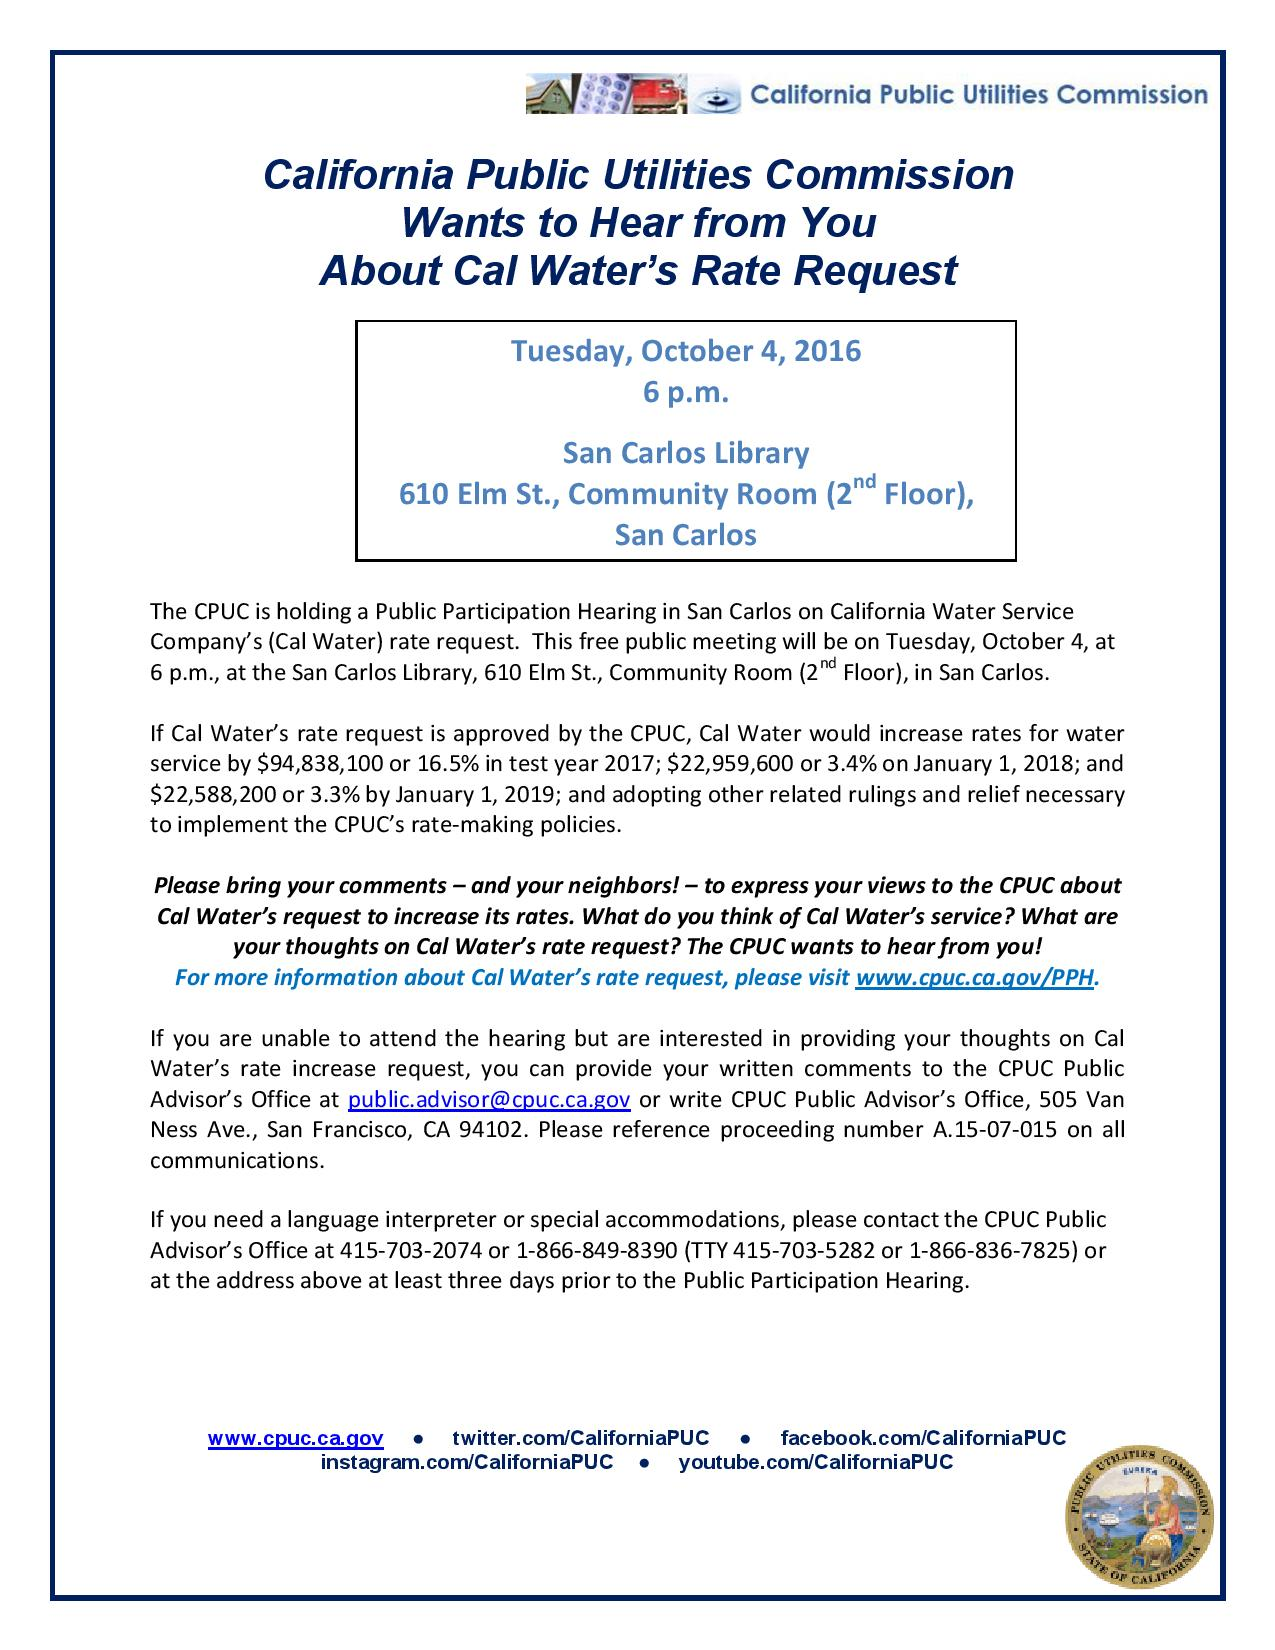 cpuc-pph-on-cal-water-san-carlos-flier-100416-page-001-2